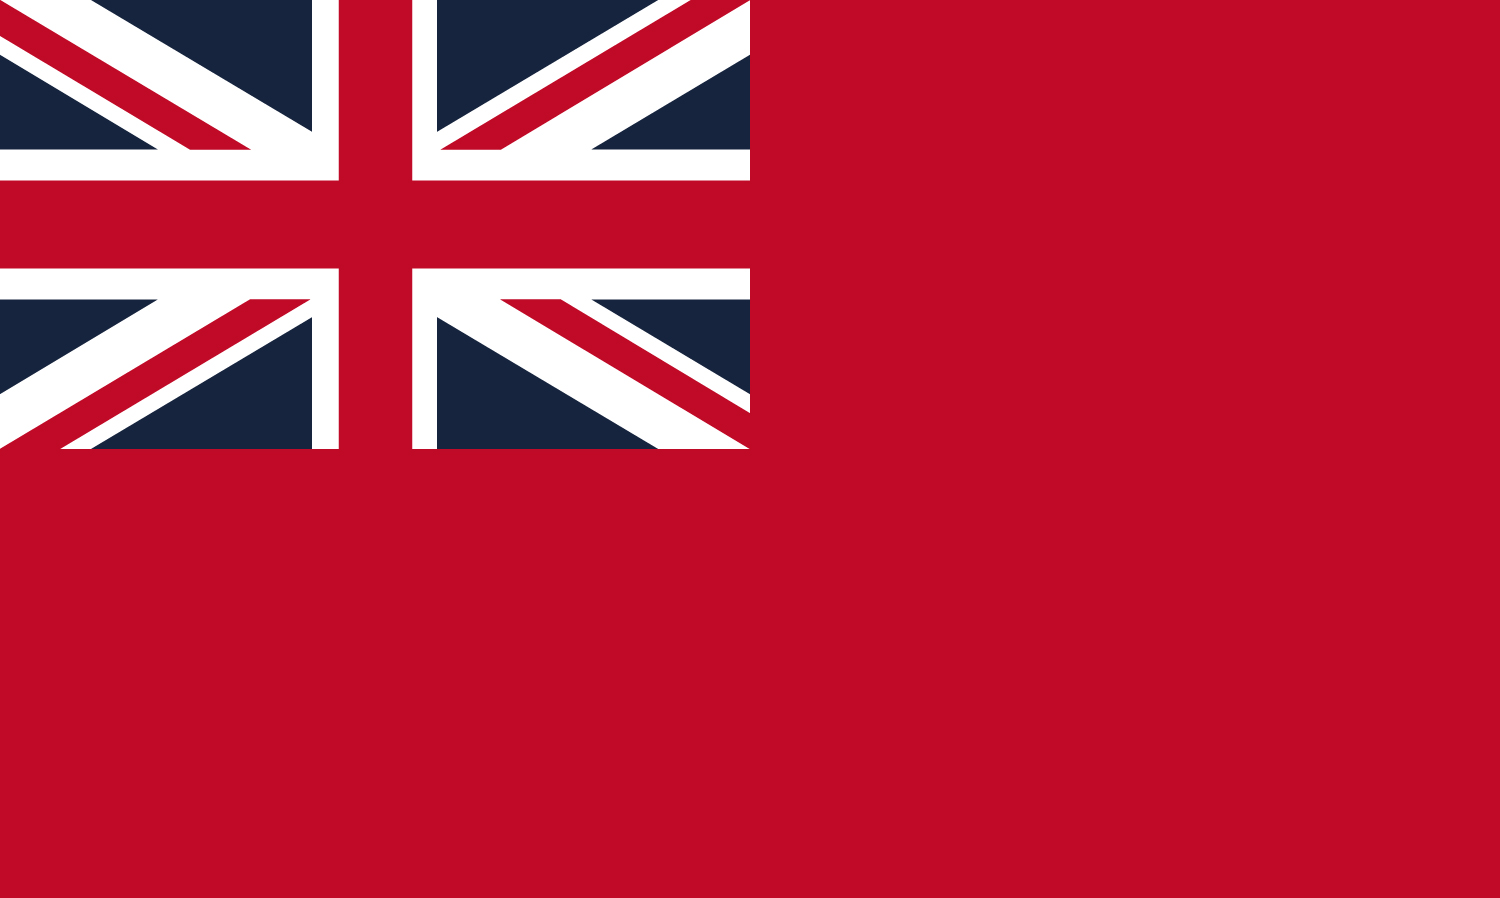 Buy best quality Red Ensign flags for Merchant Navy Day.